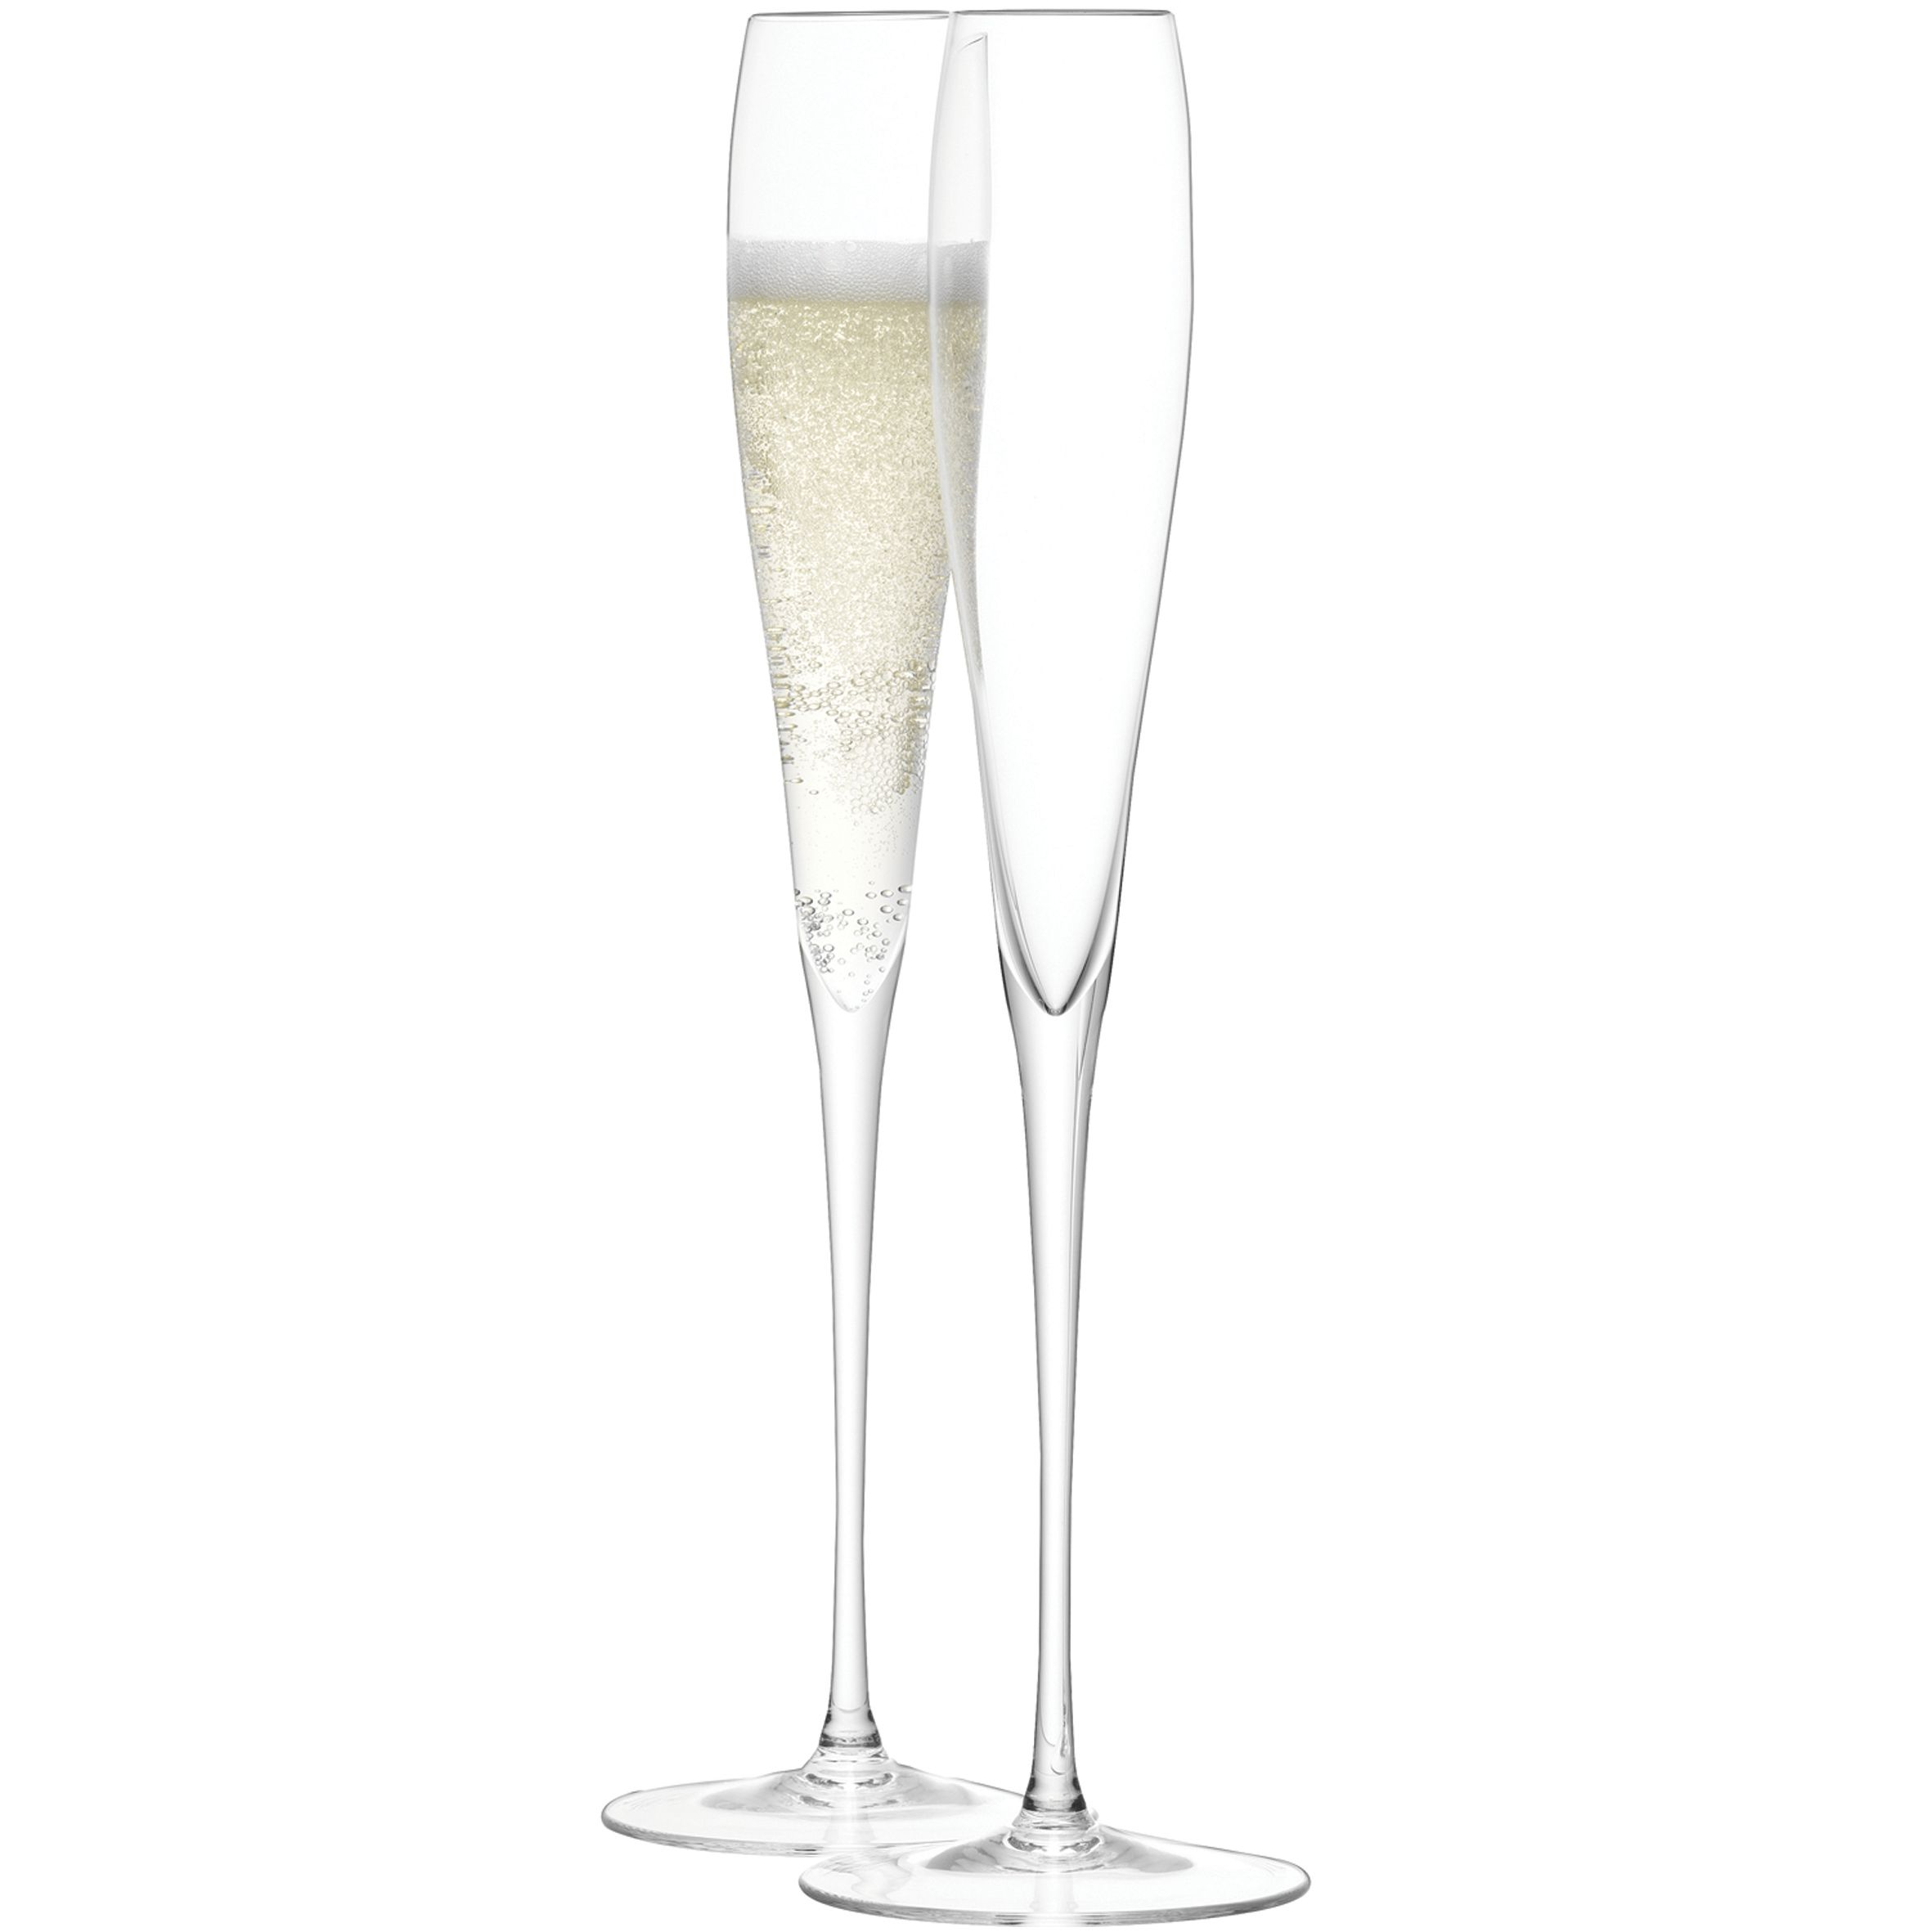 Wine grand champagne flute clear set of 2